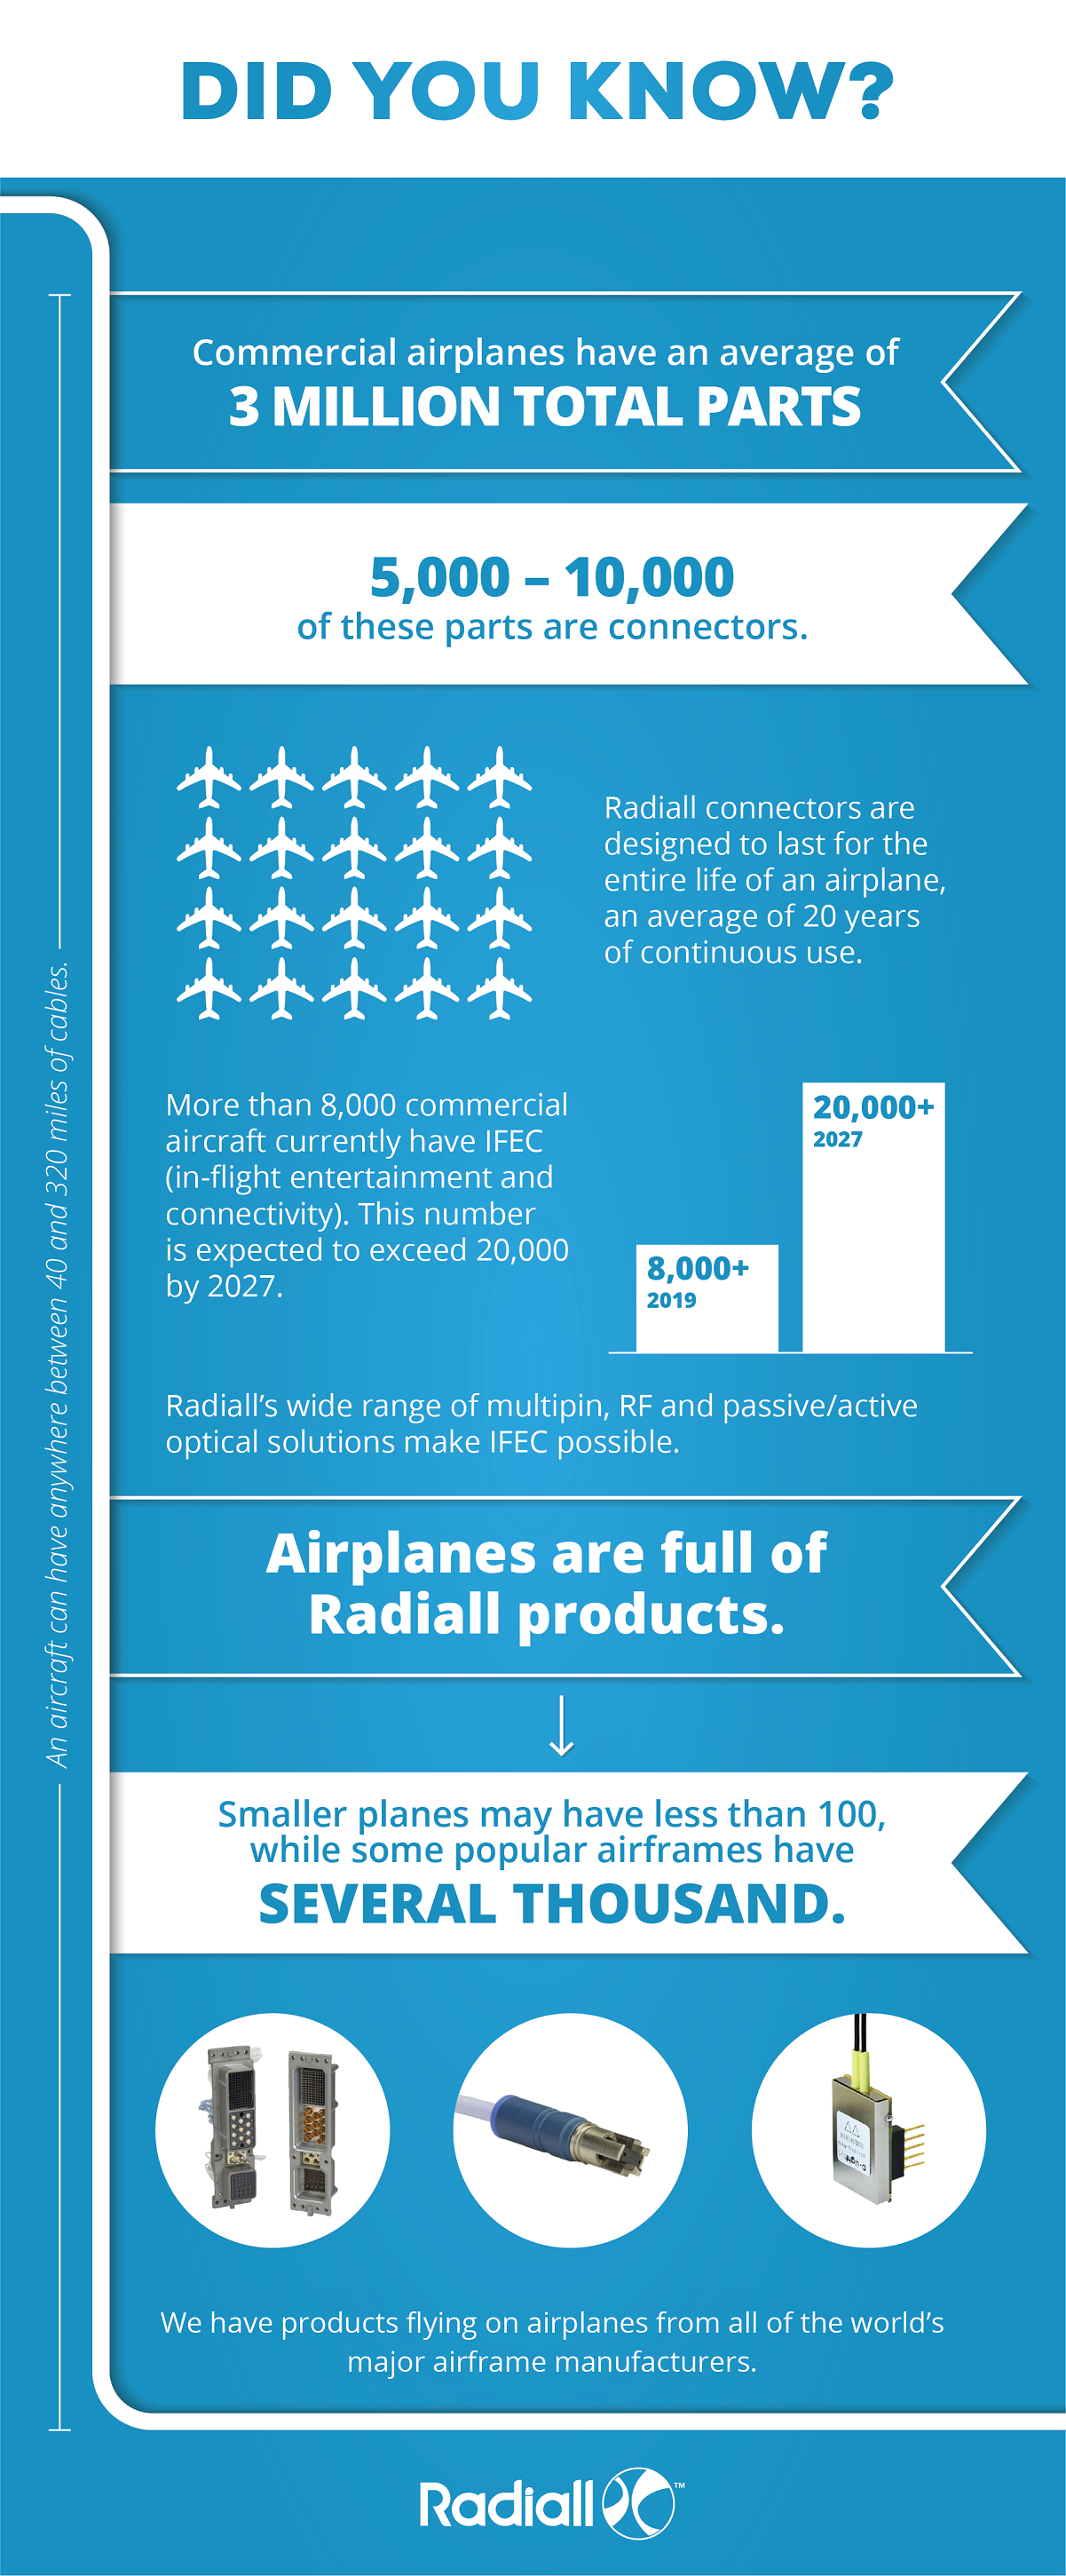 Radiall in Flight #infographic